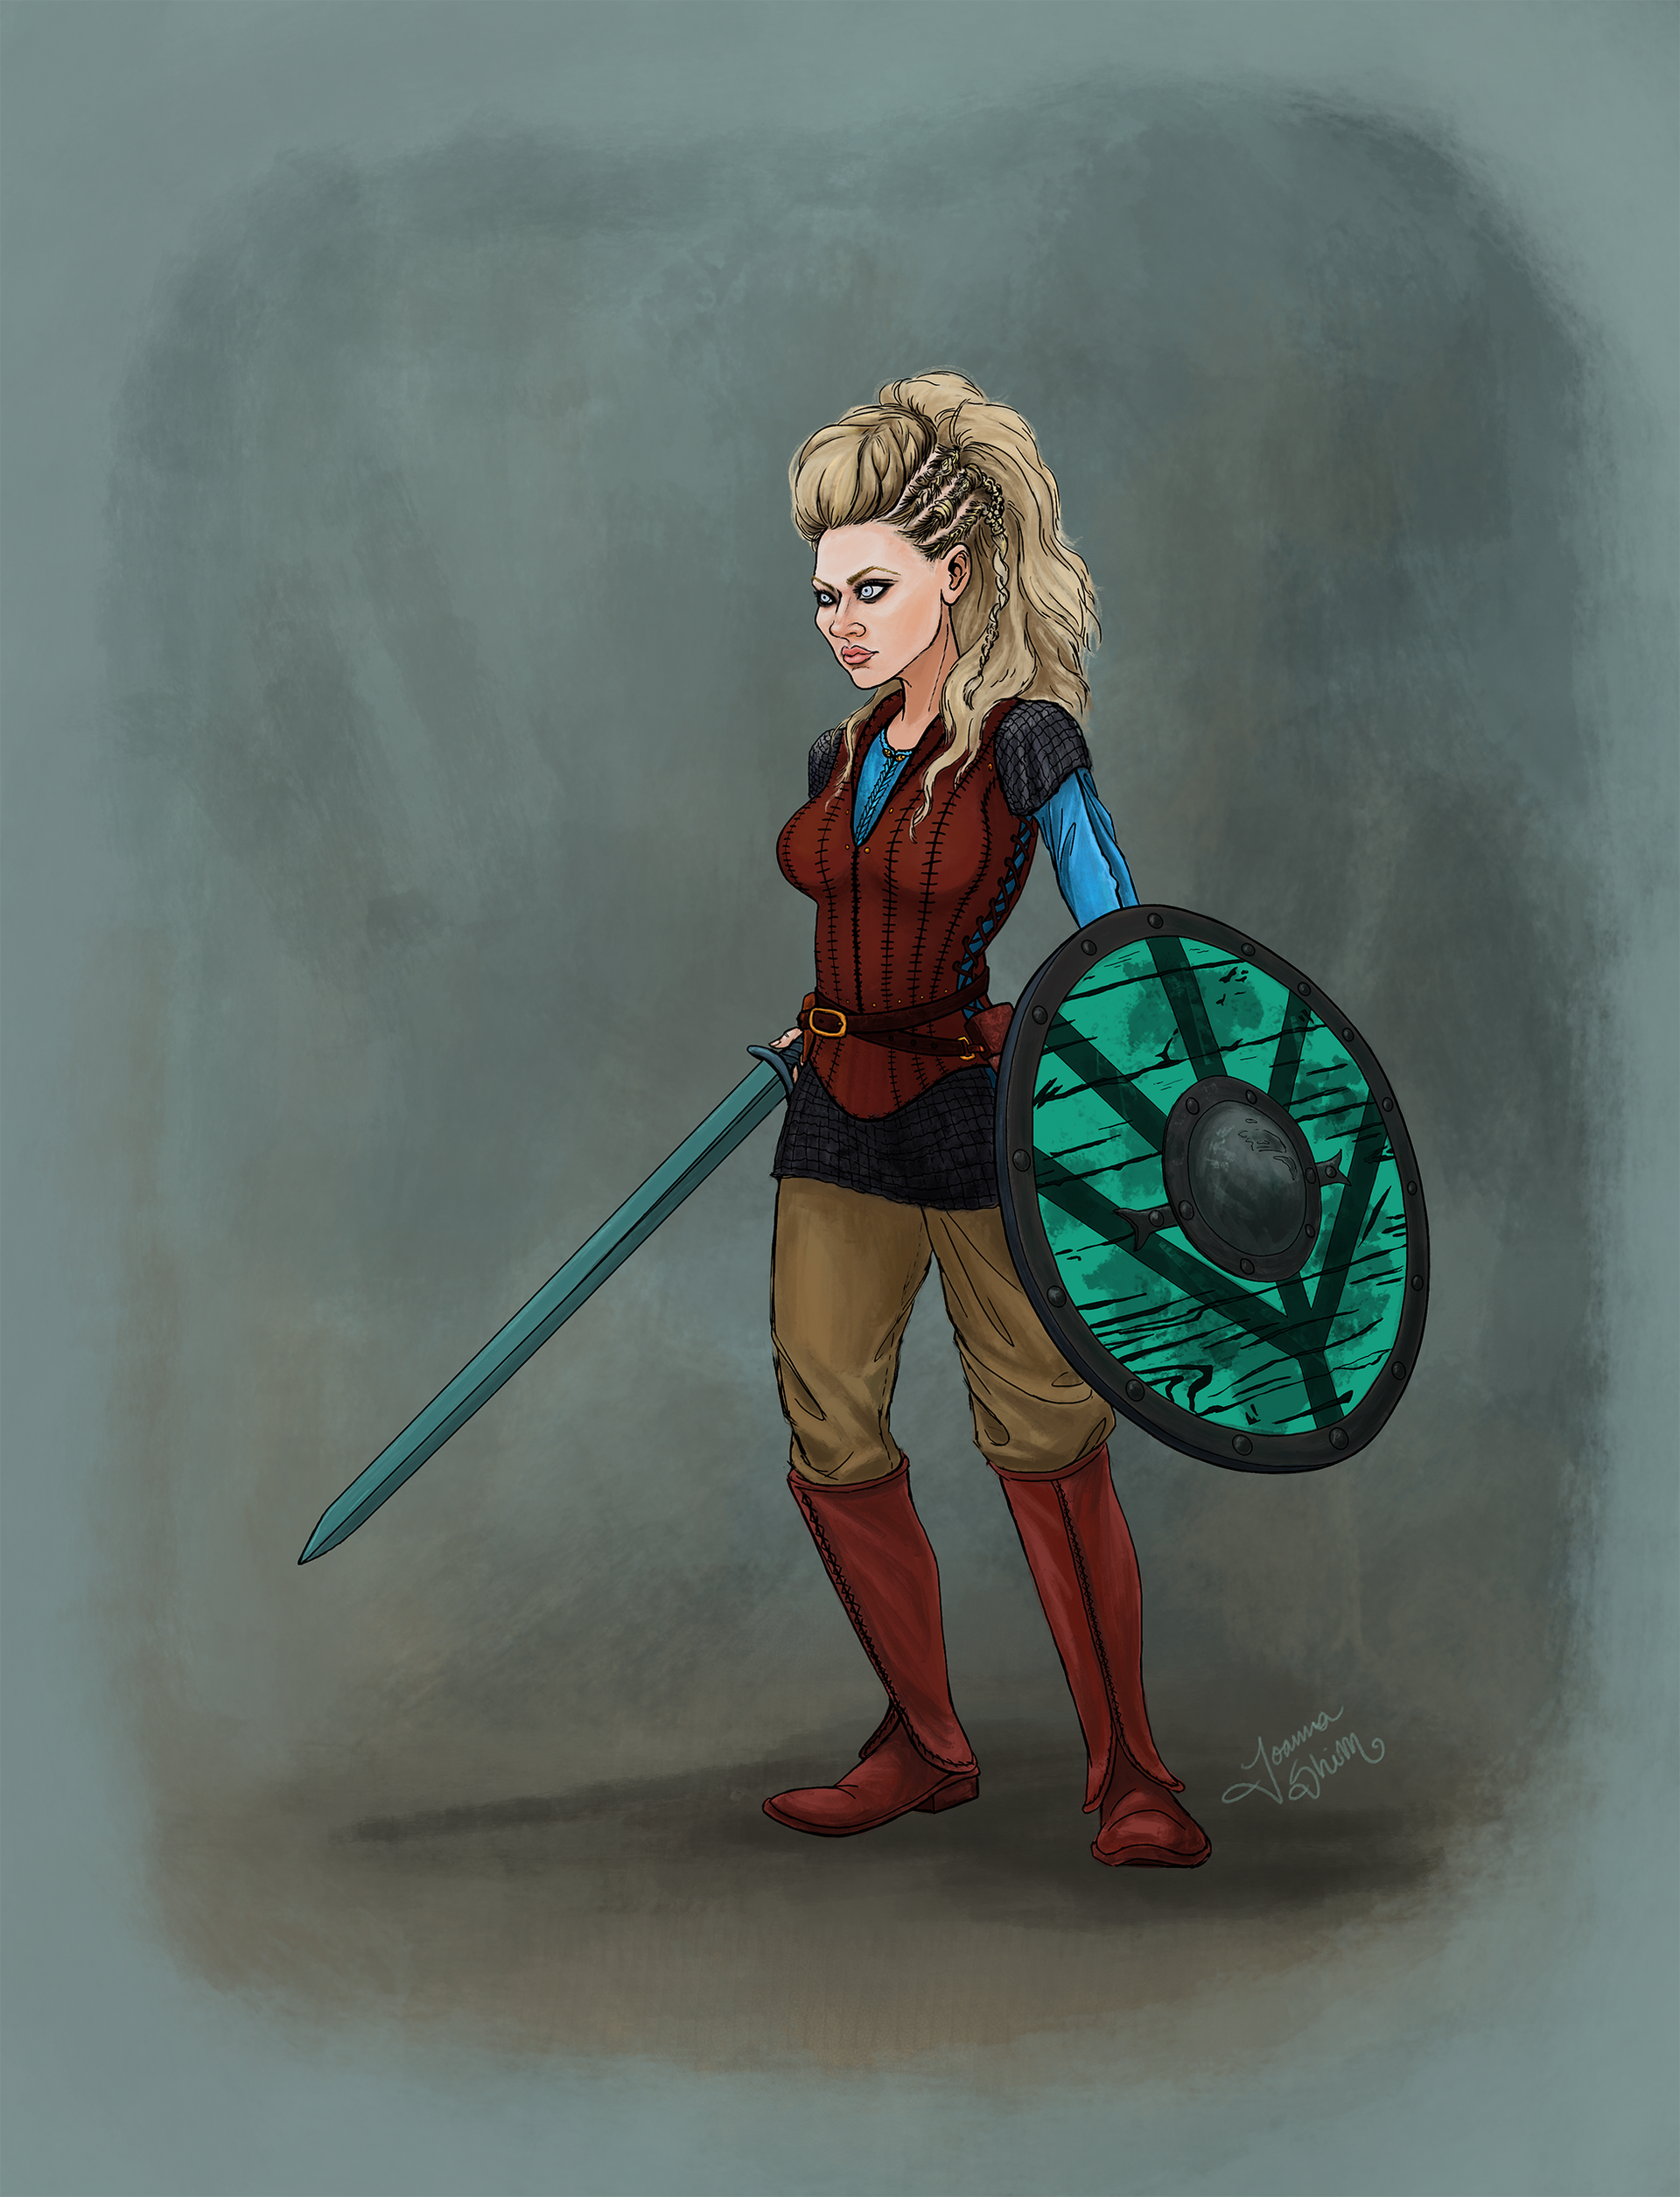 Lagertha from the show Vikings